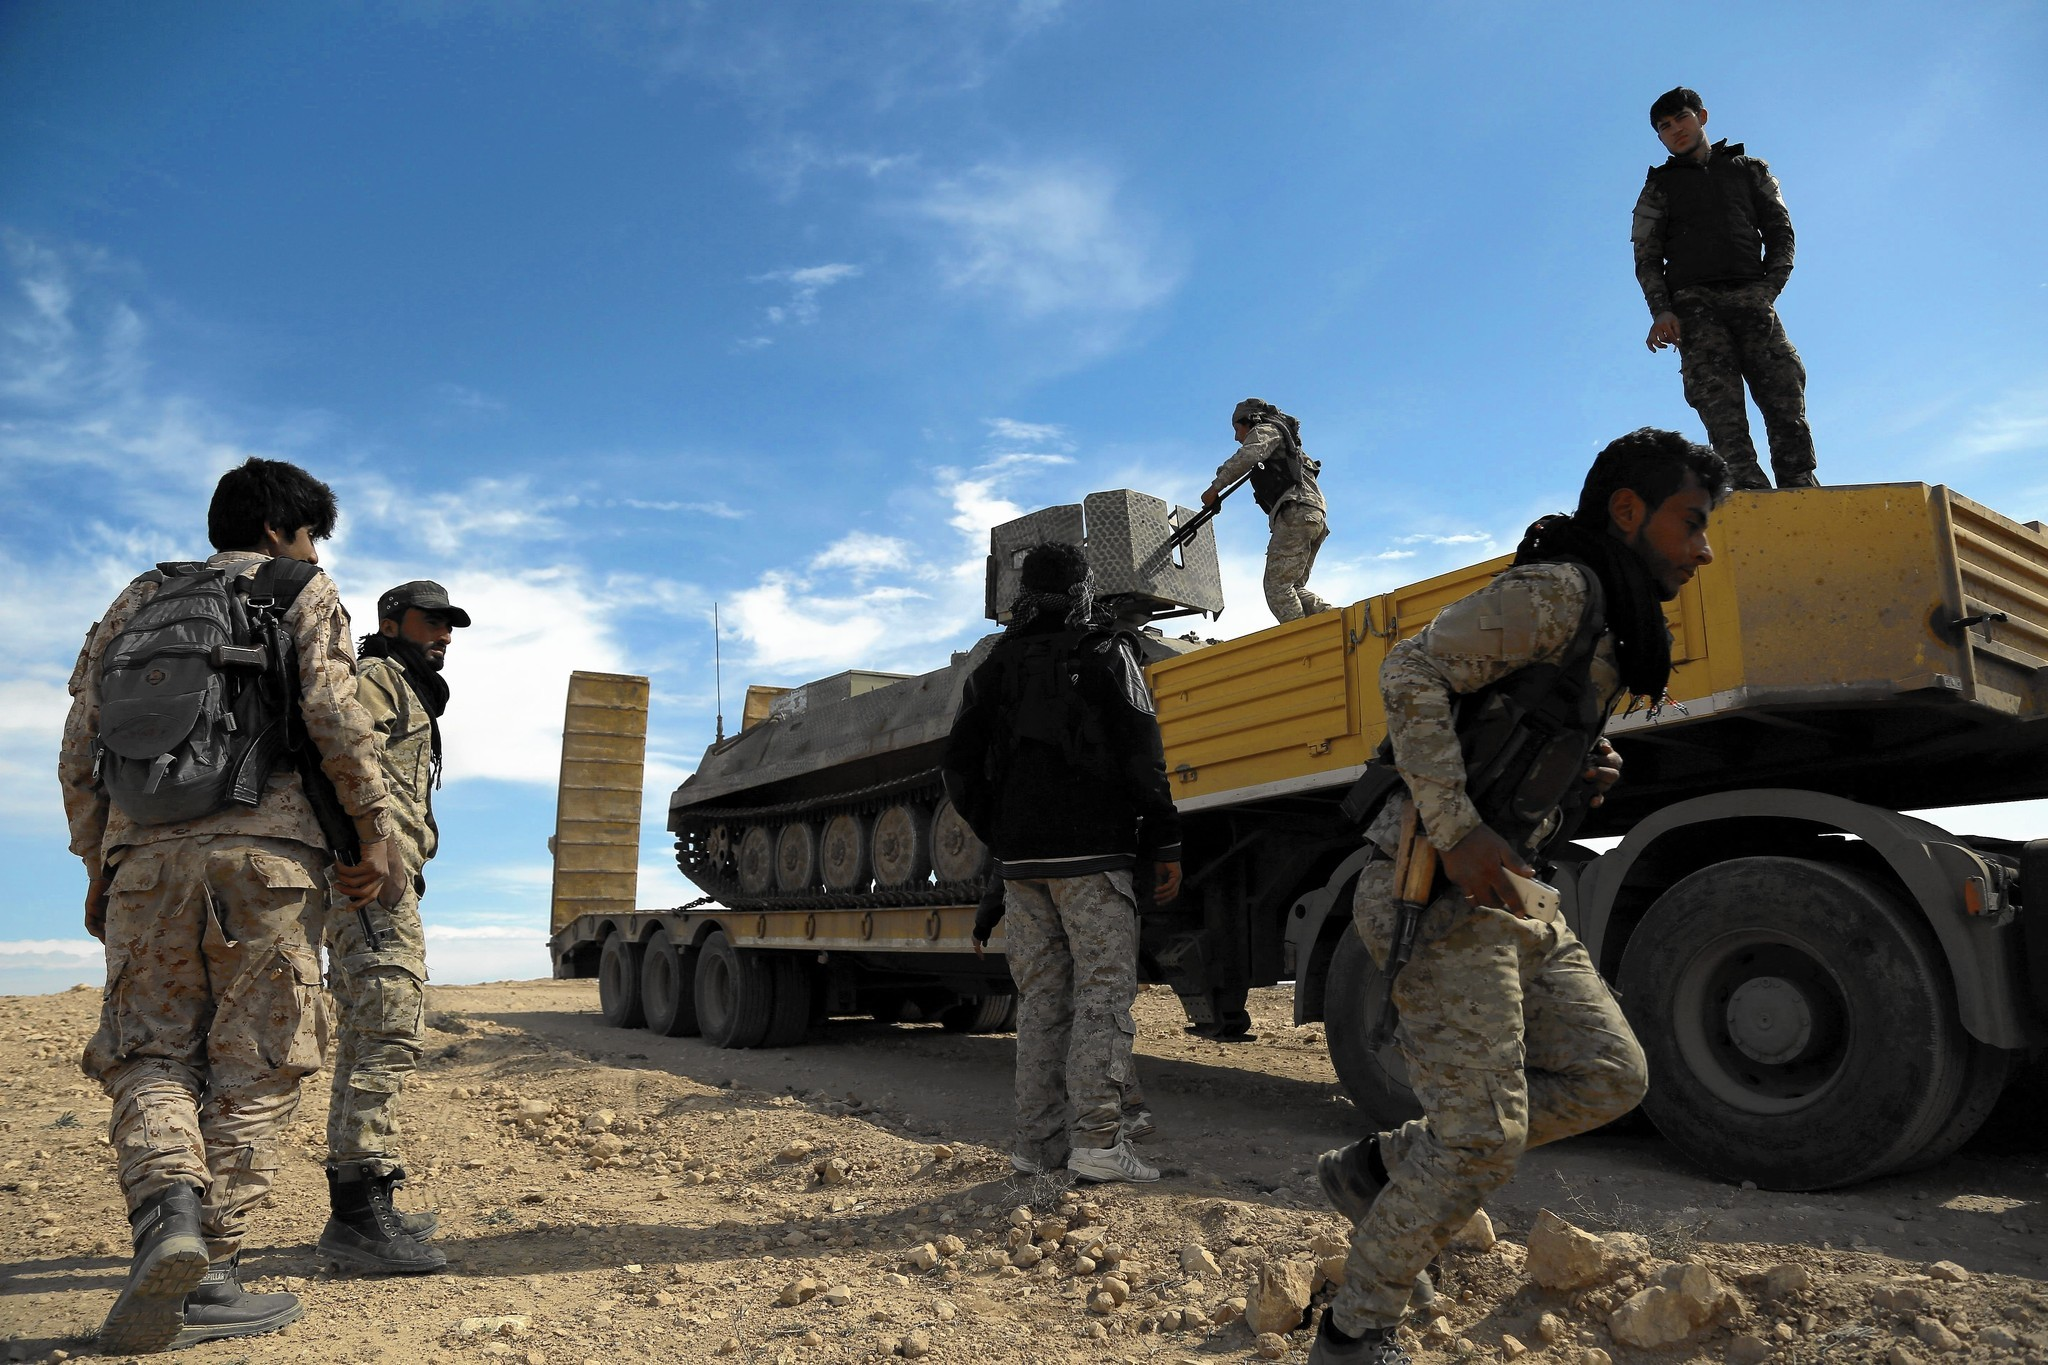 CIA-armed militias are shooting at Pentagon-armed ones in Syria